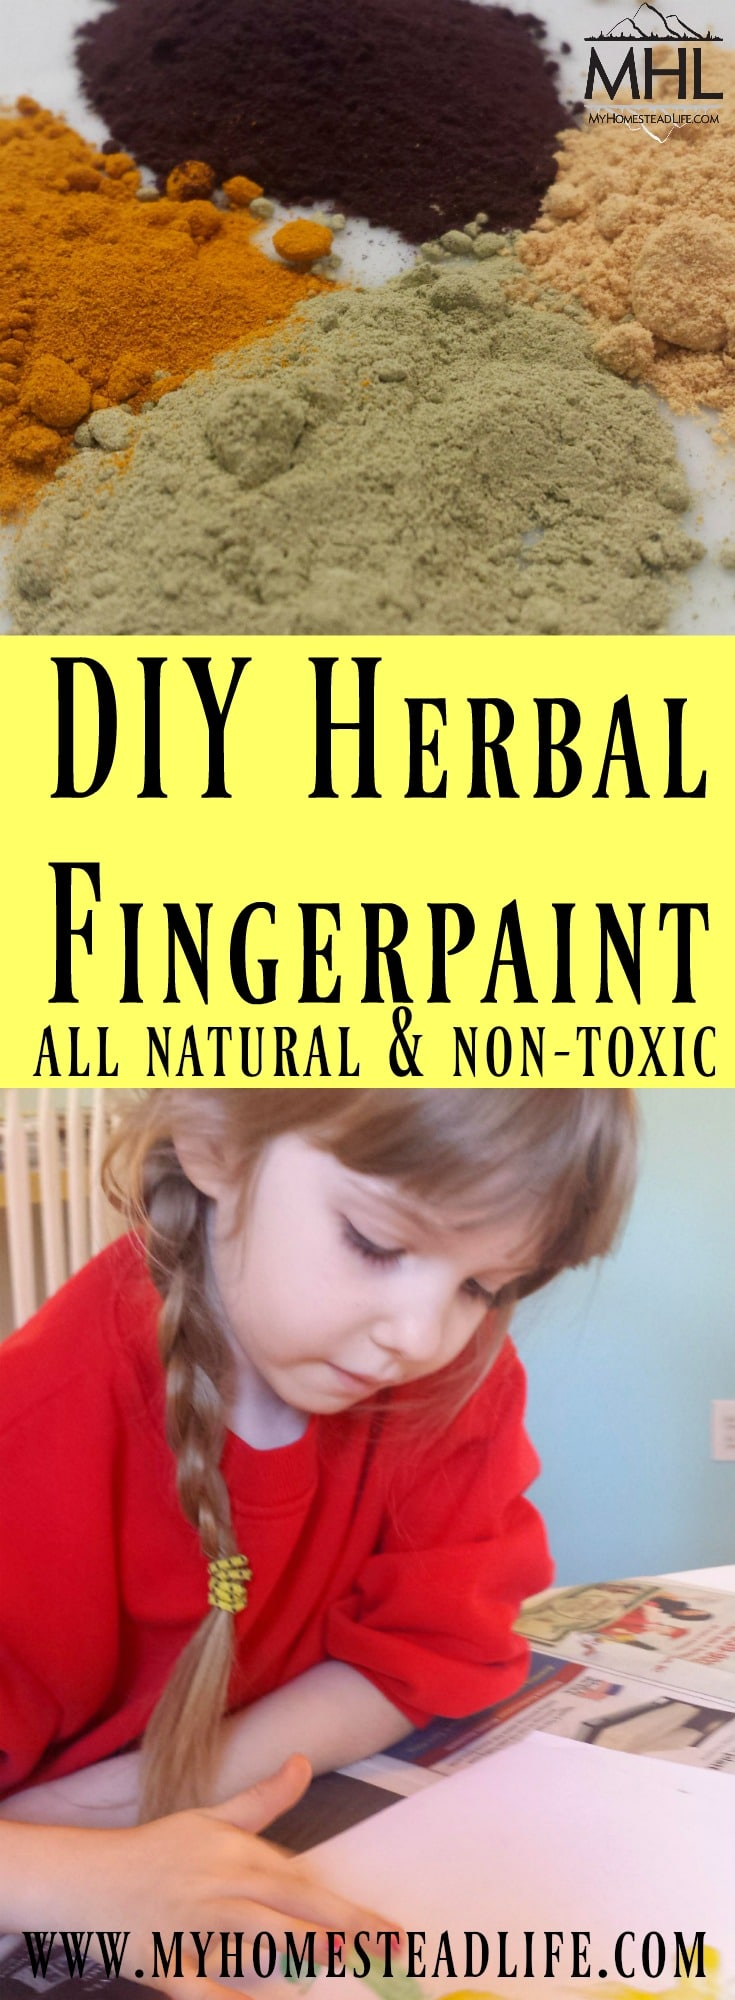 DIY Herbal Fingerpaint recipe.